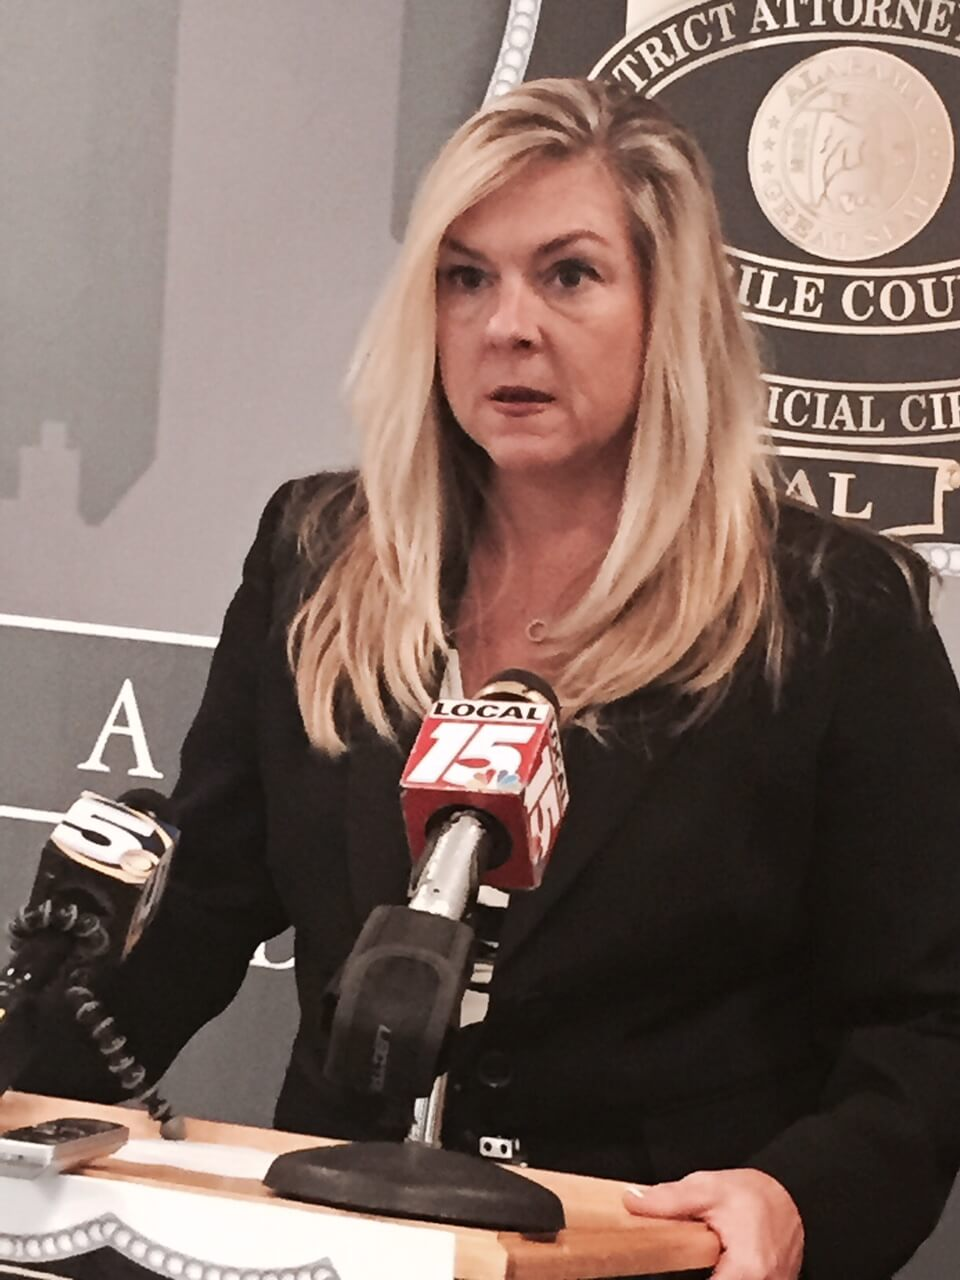 Legislators propose new liquor tax for Mobile County DA